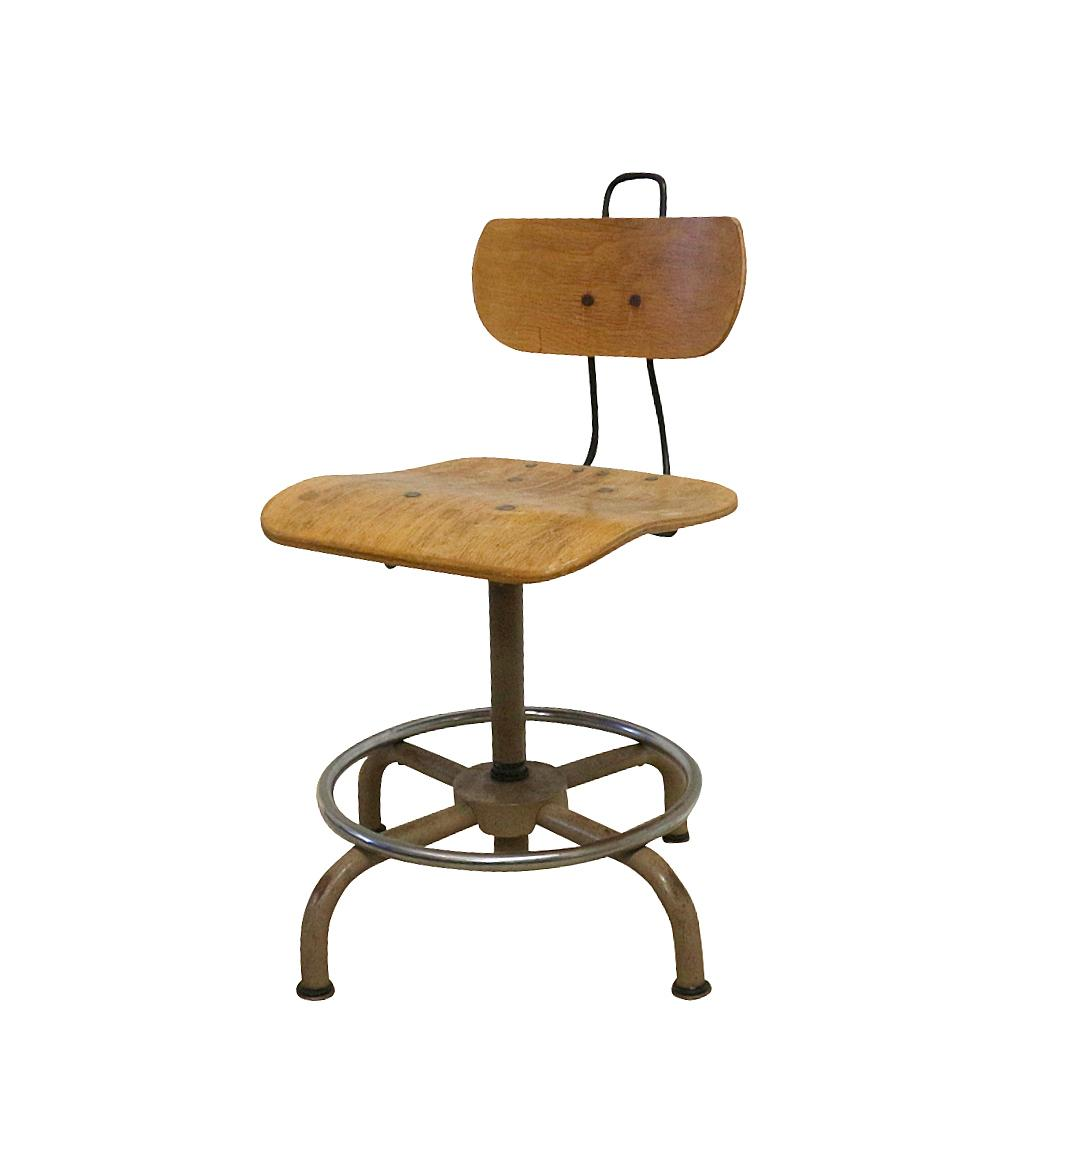 1930s Industrial Science Lab Chair Chairish